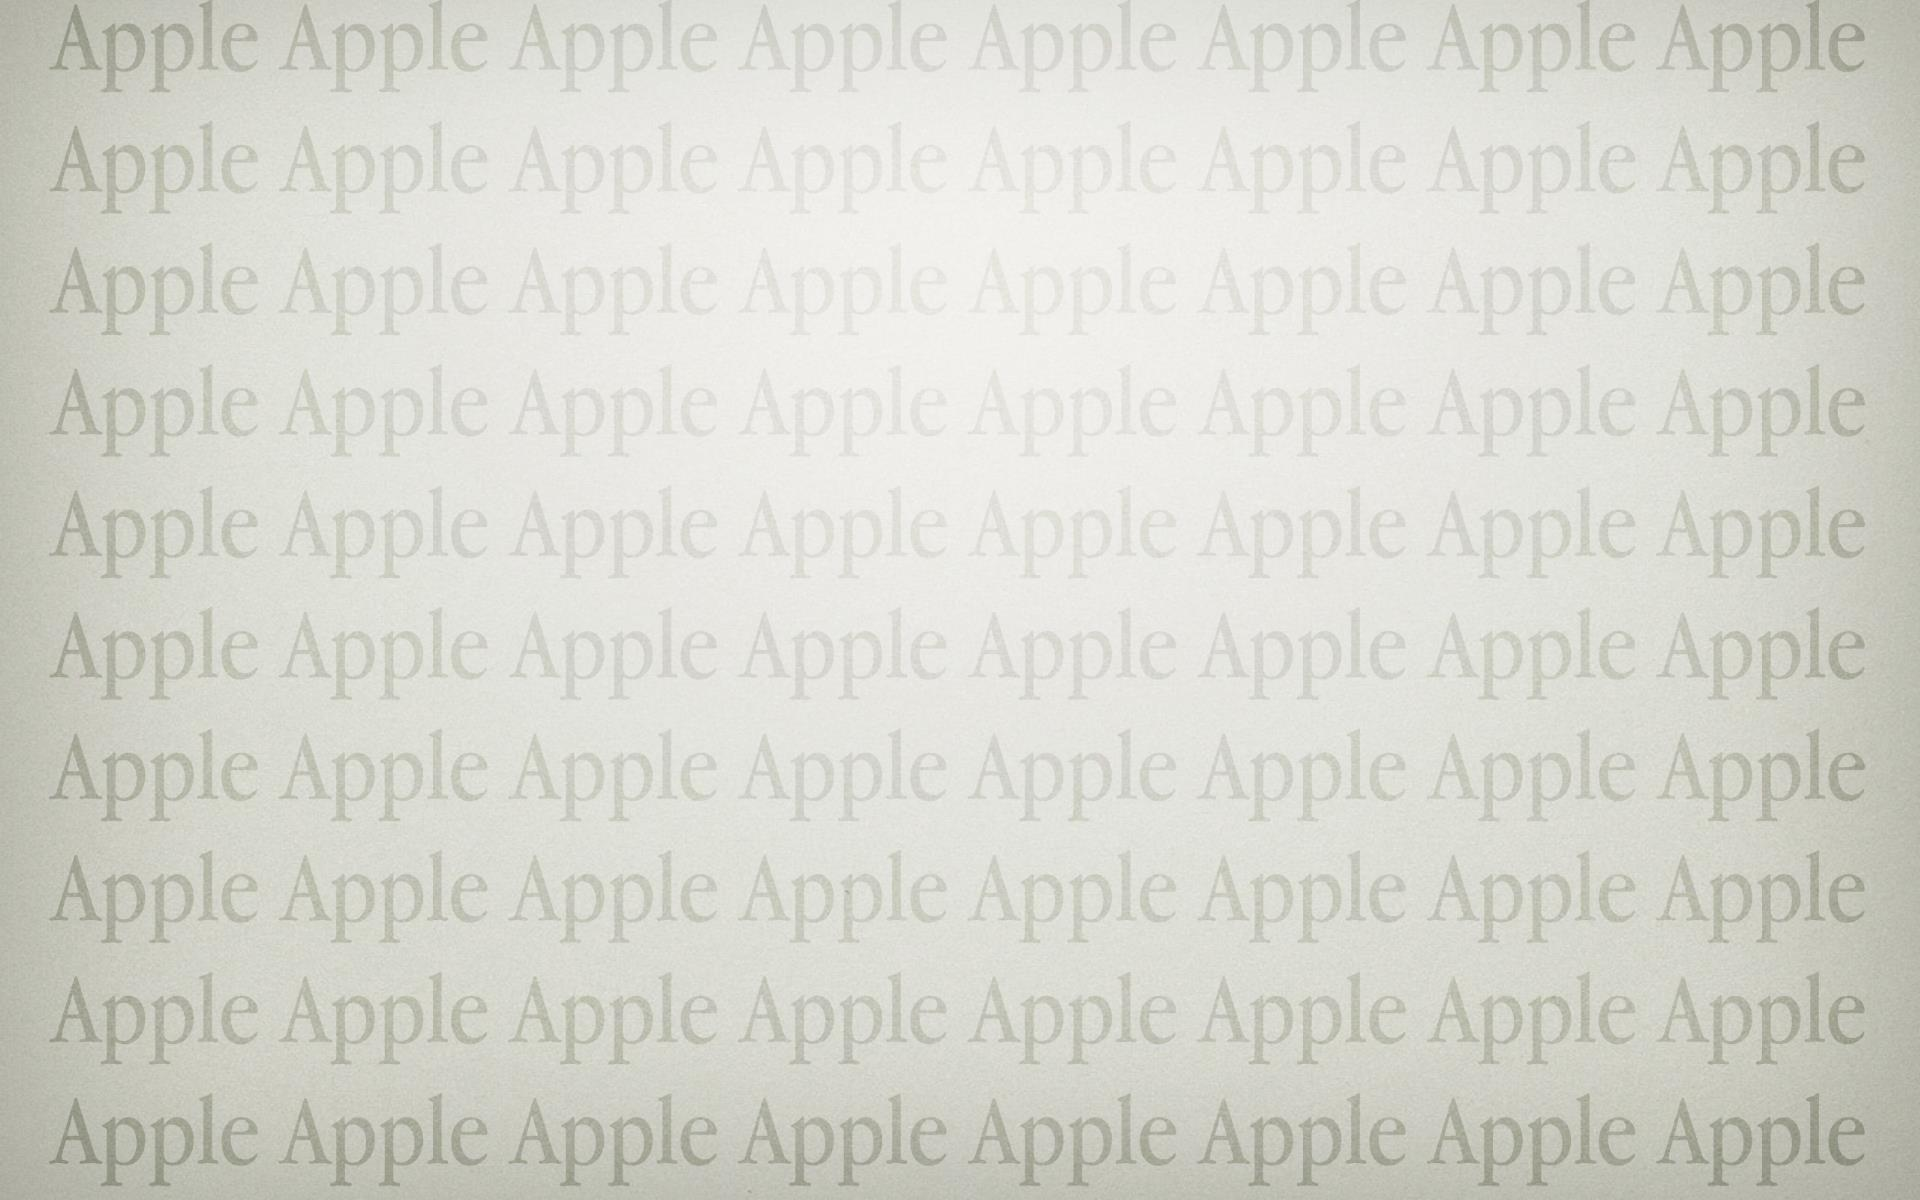 fond-ecran_apple_1